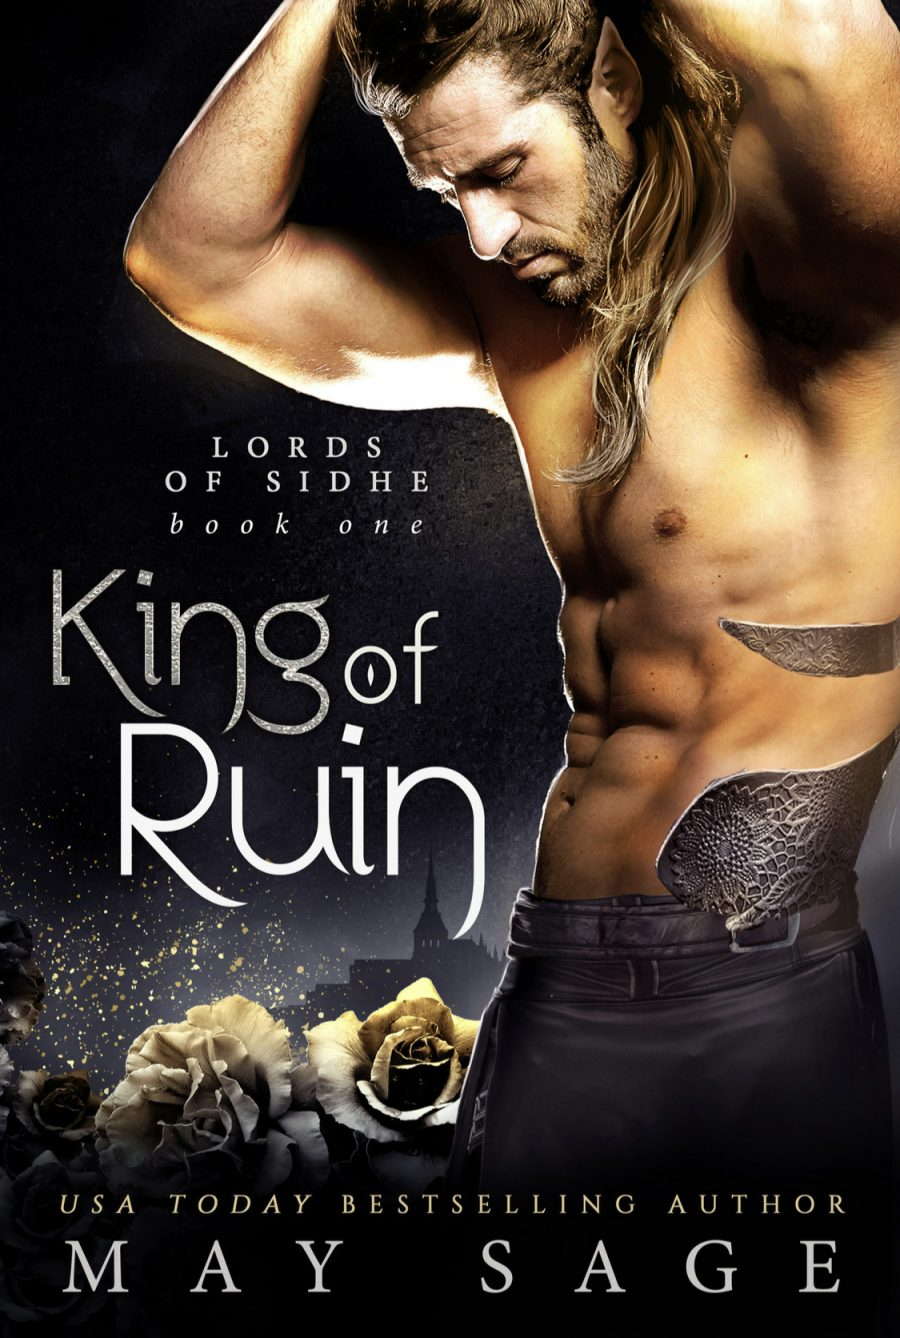 King of Ruin by May Sage - A Book Review #BookReview #Review #Fantasy #FantasyRomance #Romance #Book1 #4Stars #Fae #Gods #Realms